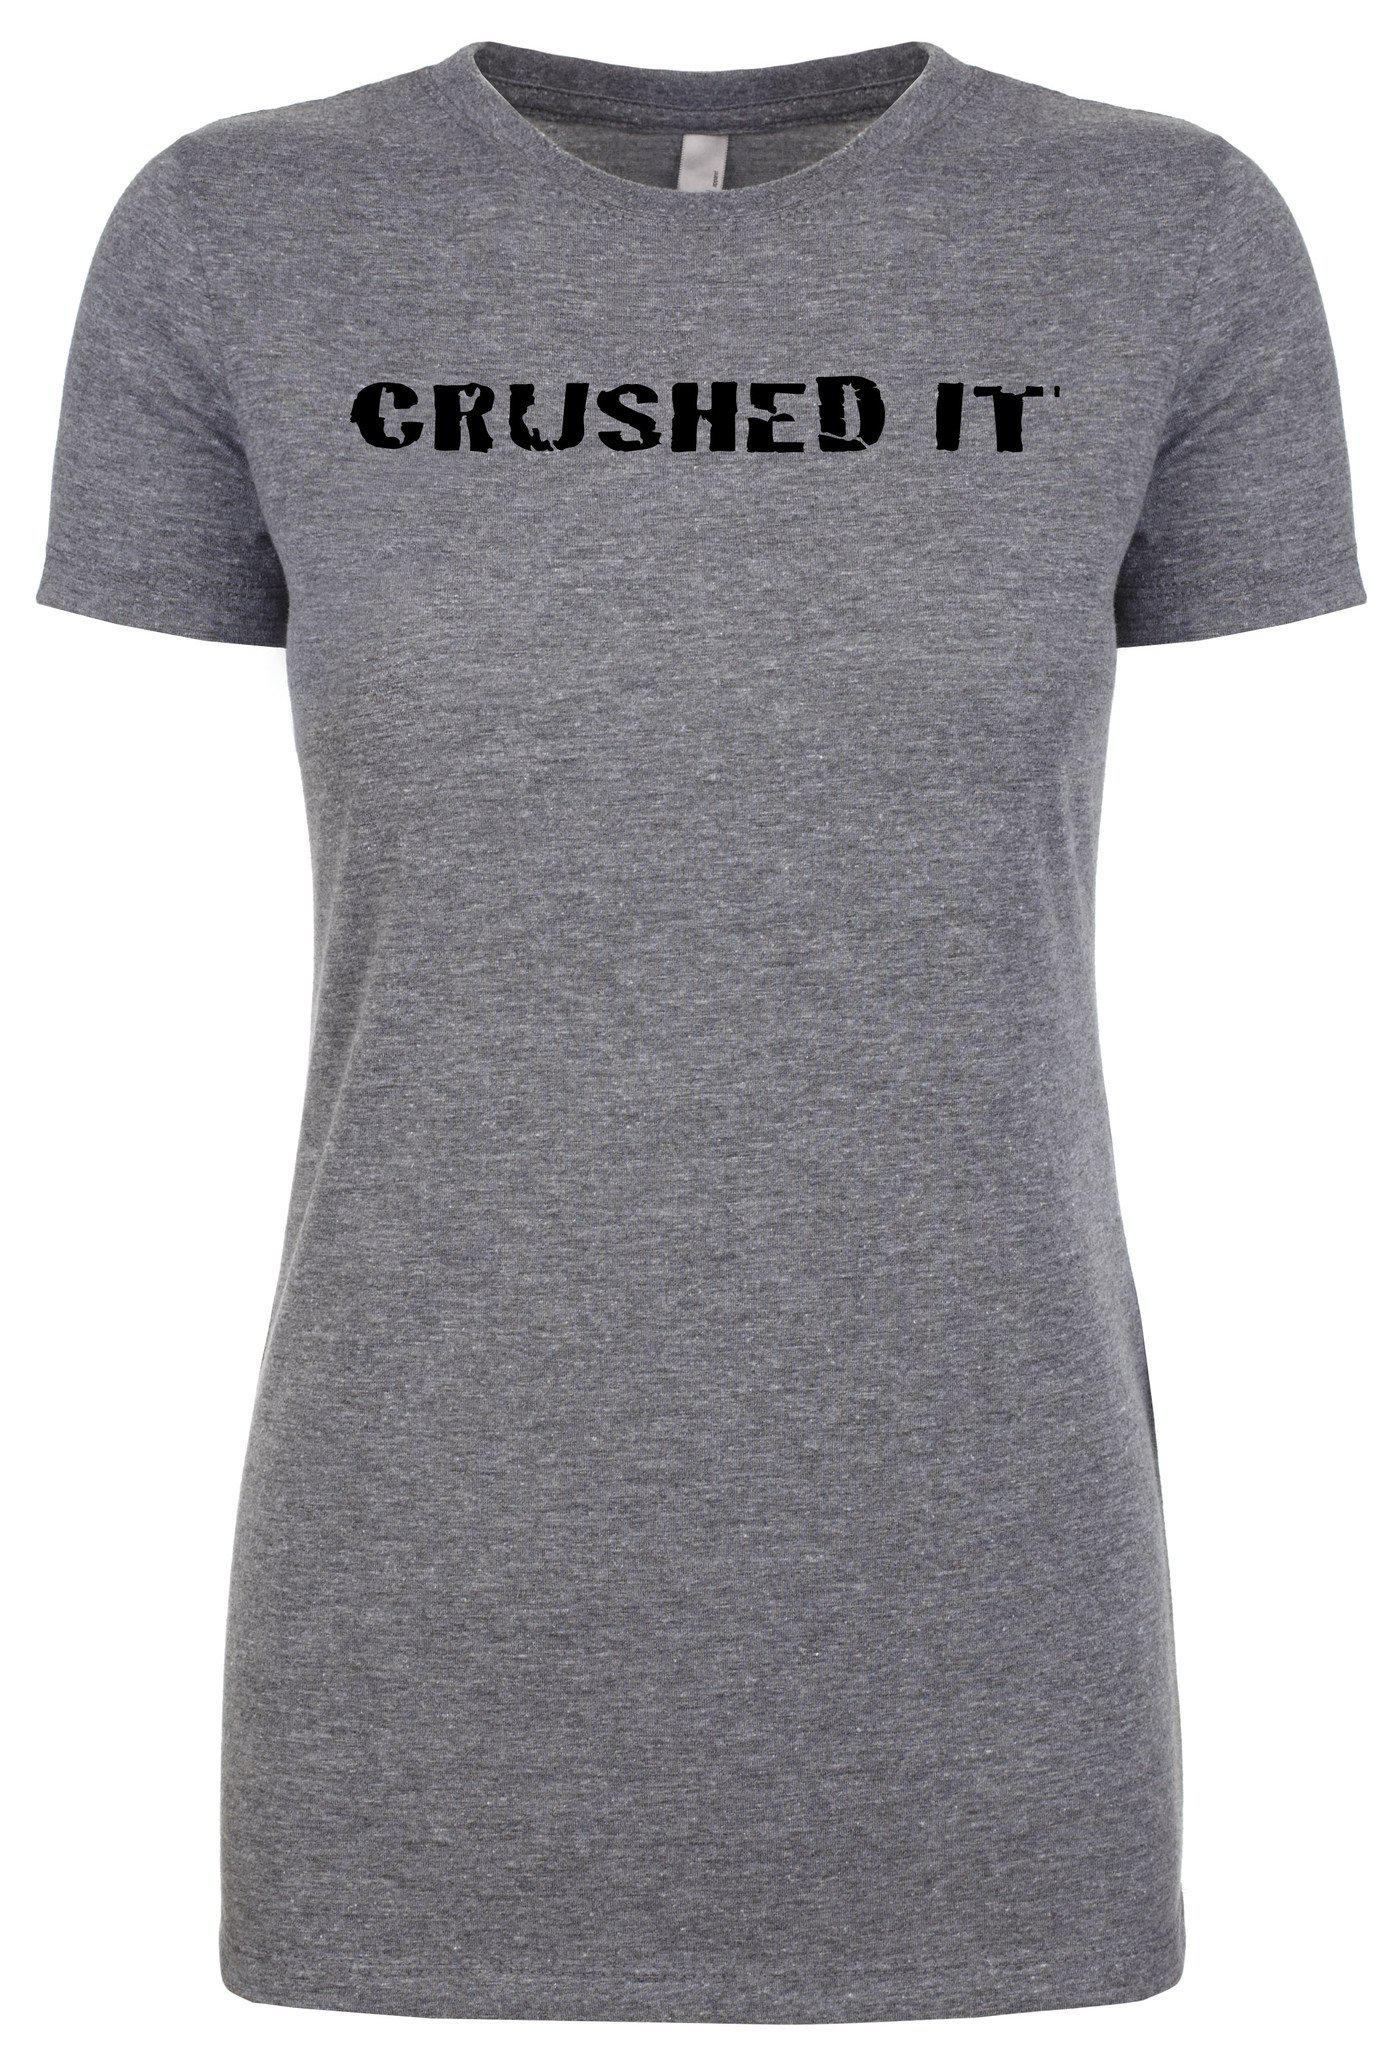 "Woman's short sleeve athletic tshirt ""crushed it"" by Endurance Apparel"